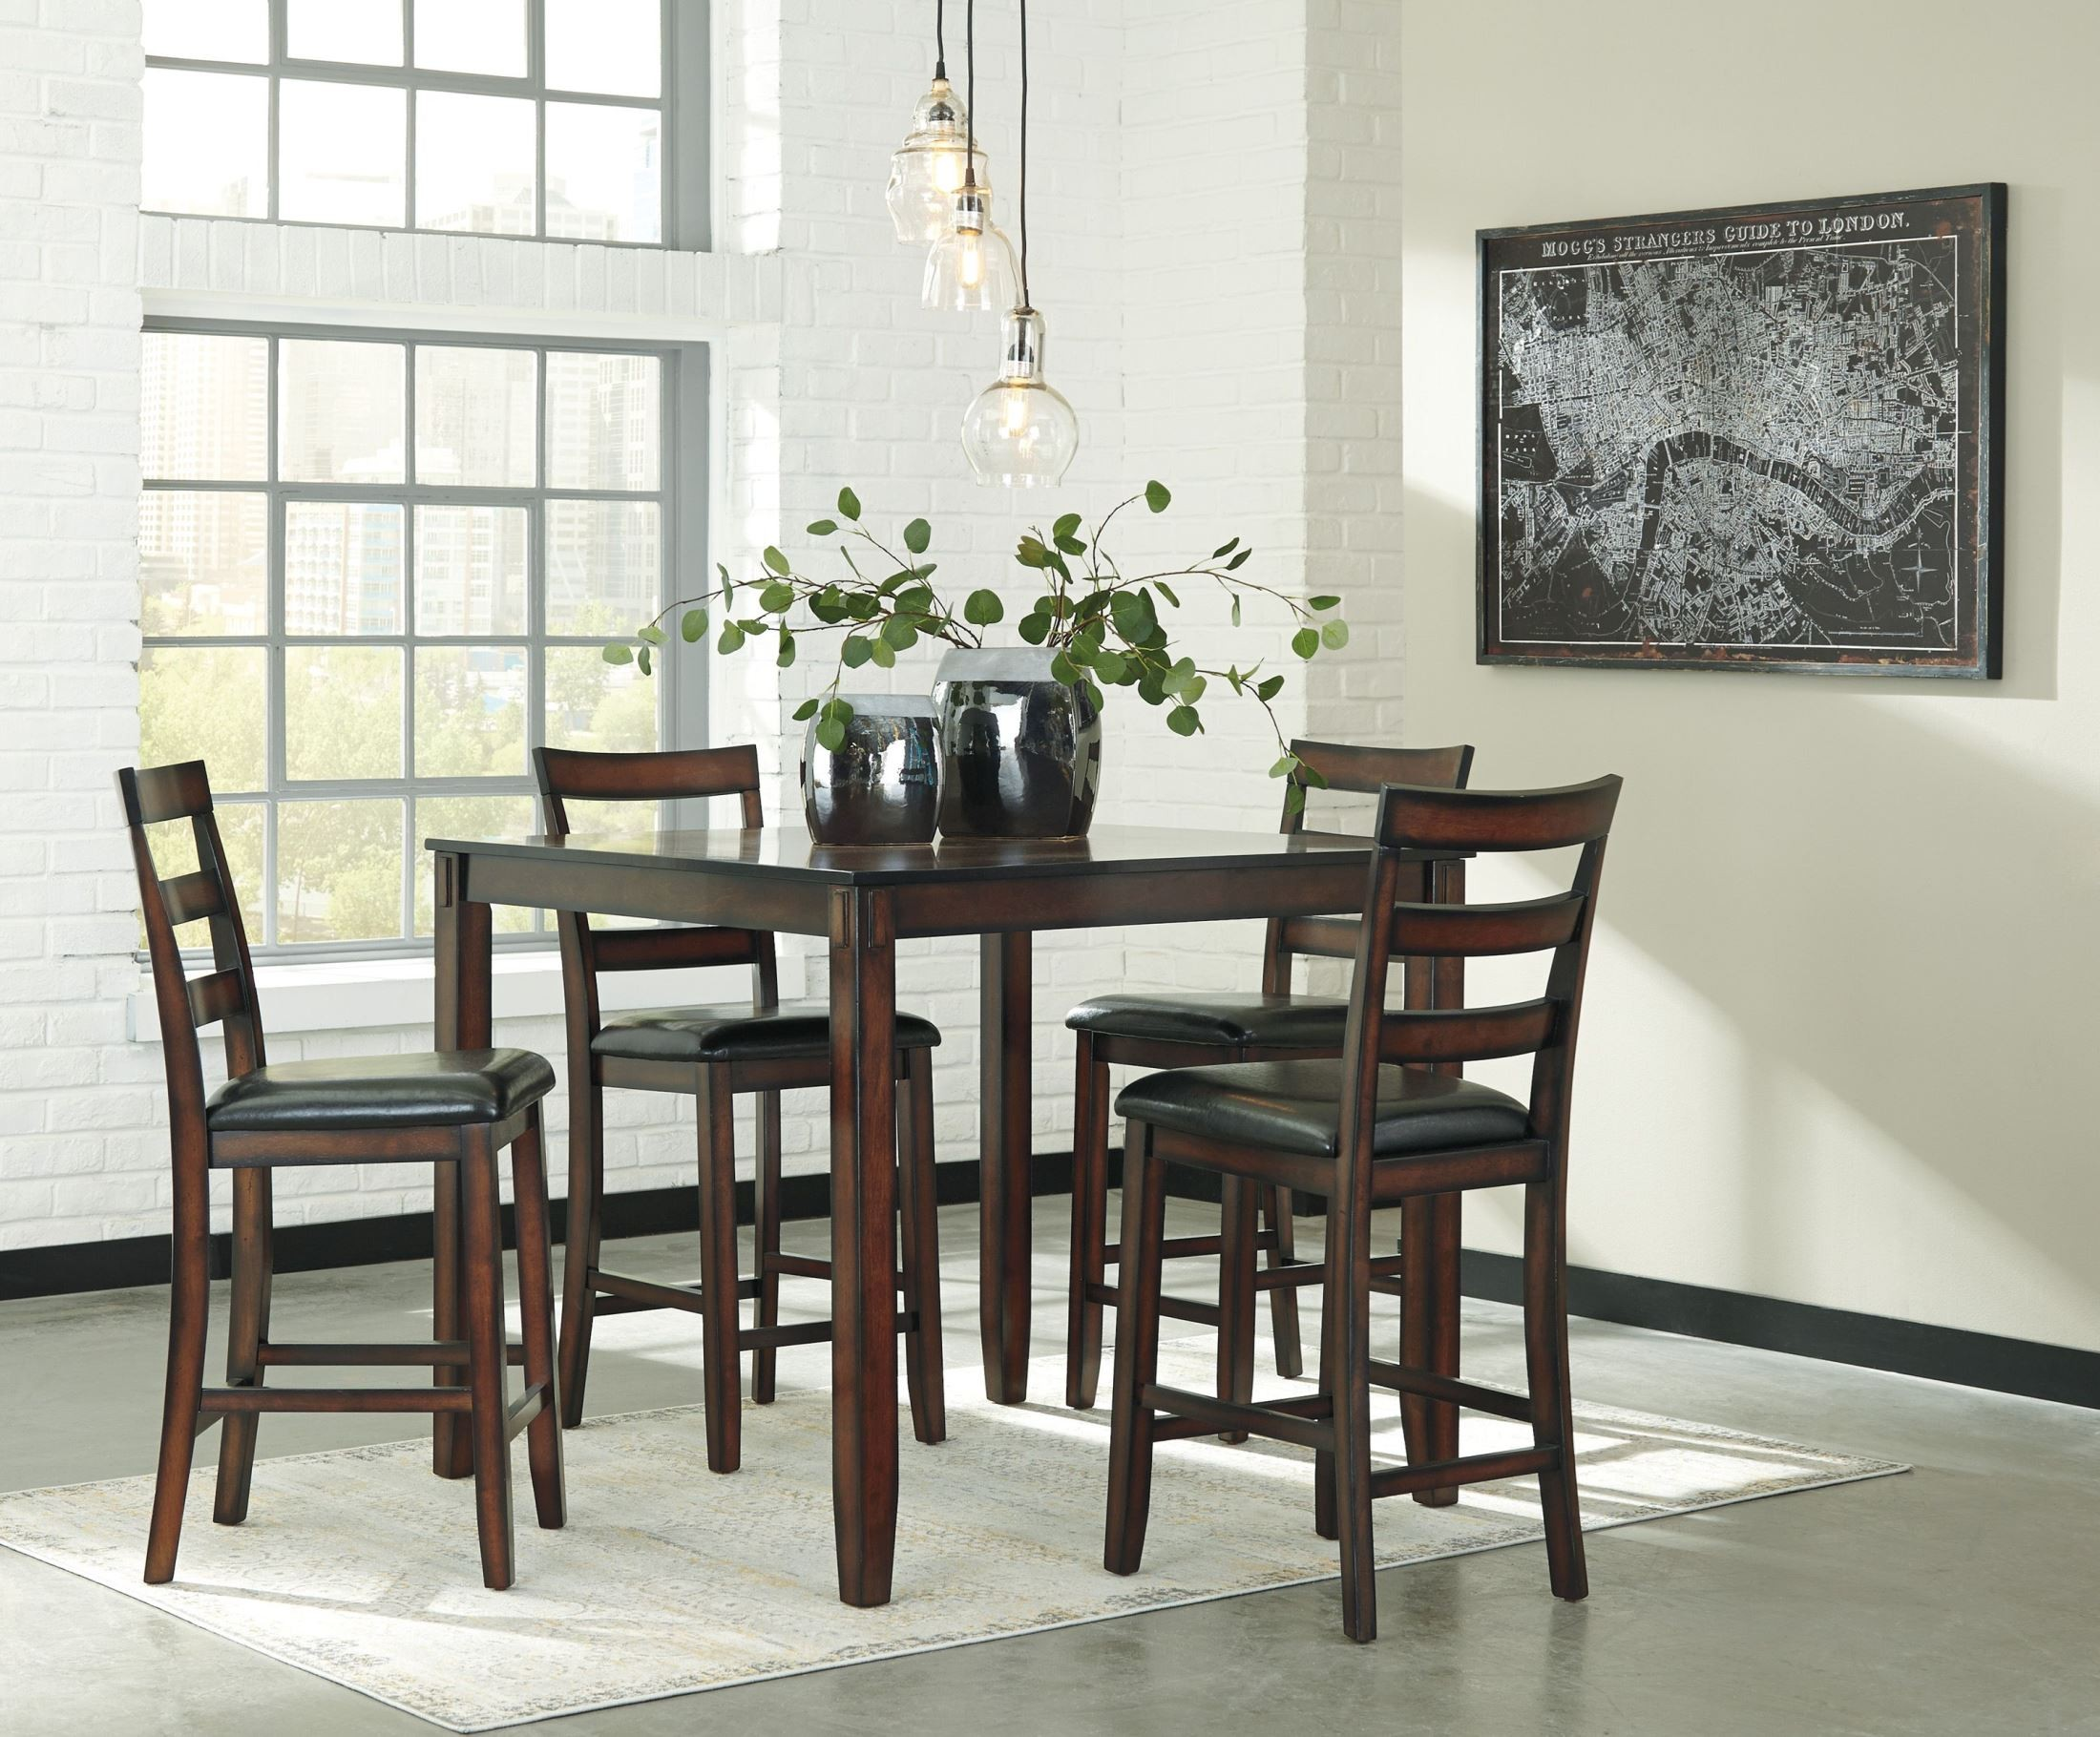 Coviar brown 5 piece counter height dining room set d385 for 5 piece dining room sets